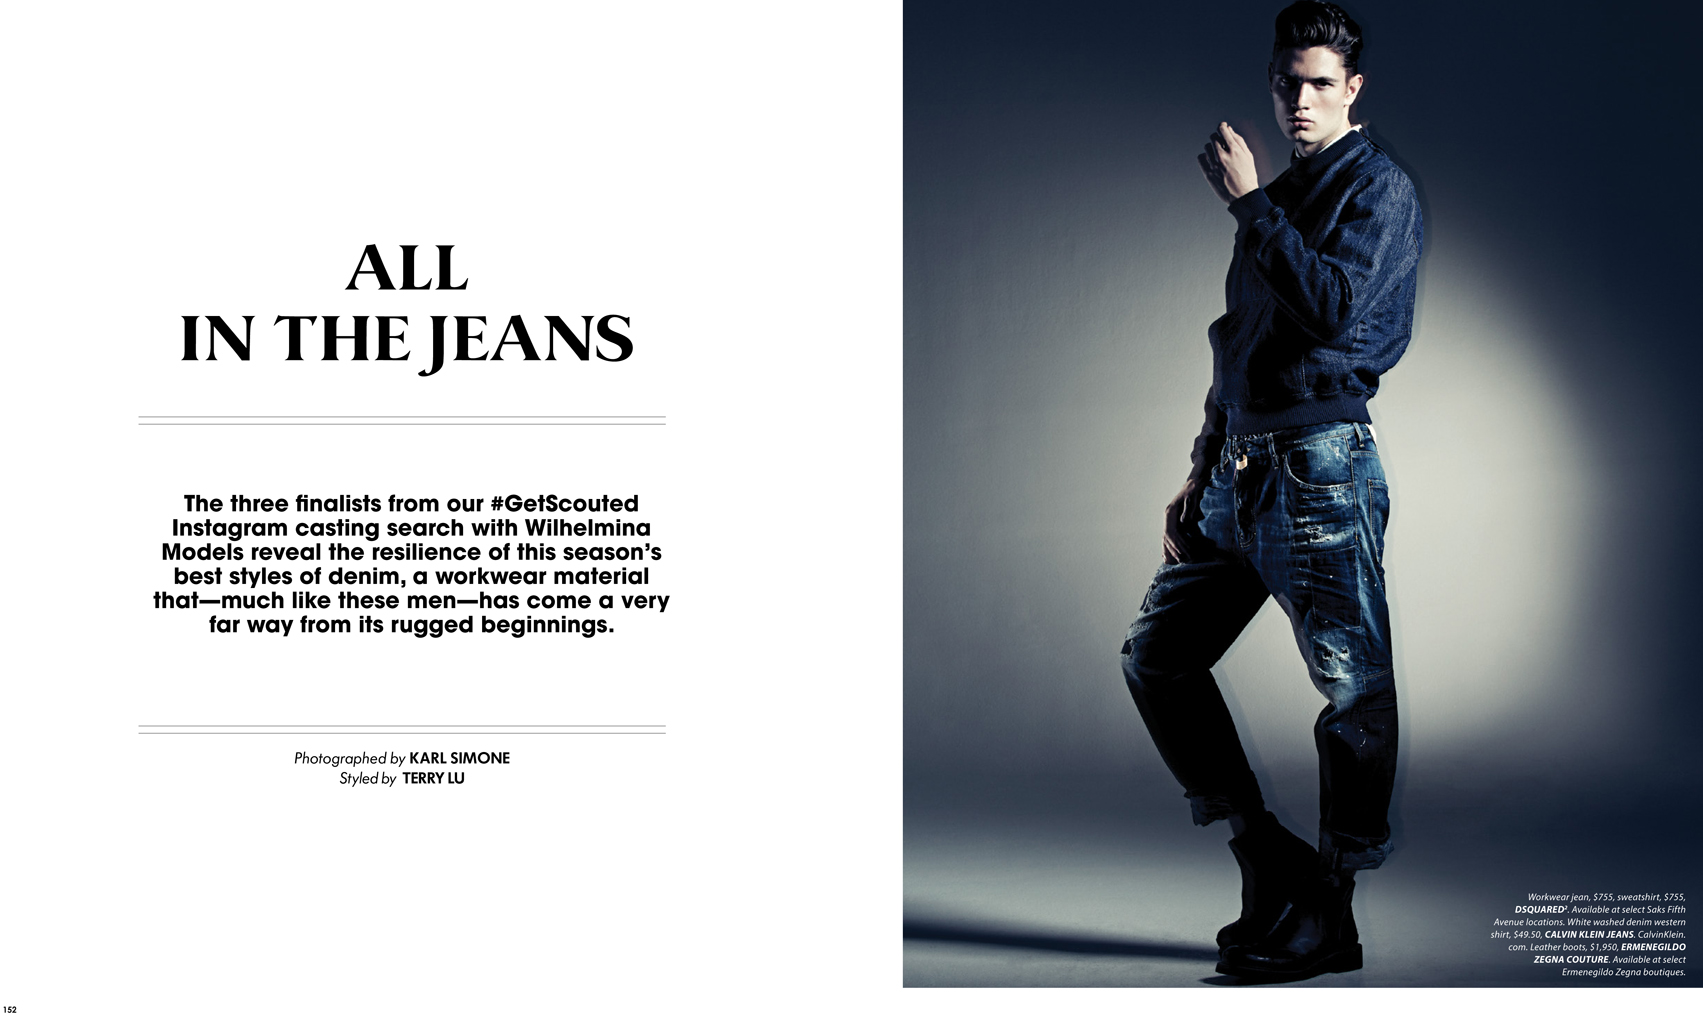 ALL IN THE JEANS BY KARL SIMONE